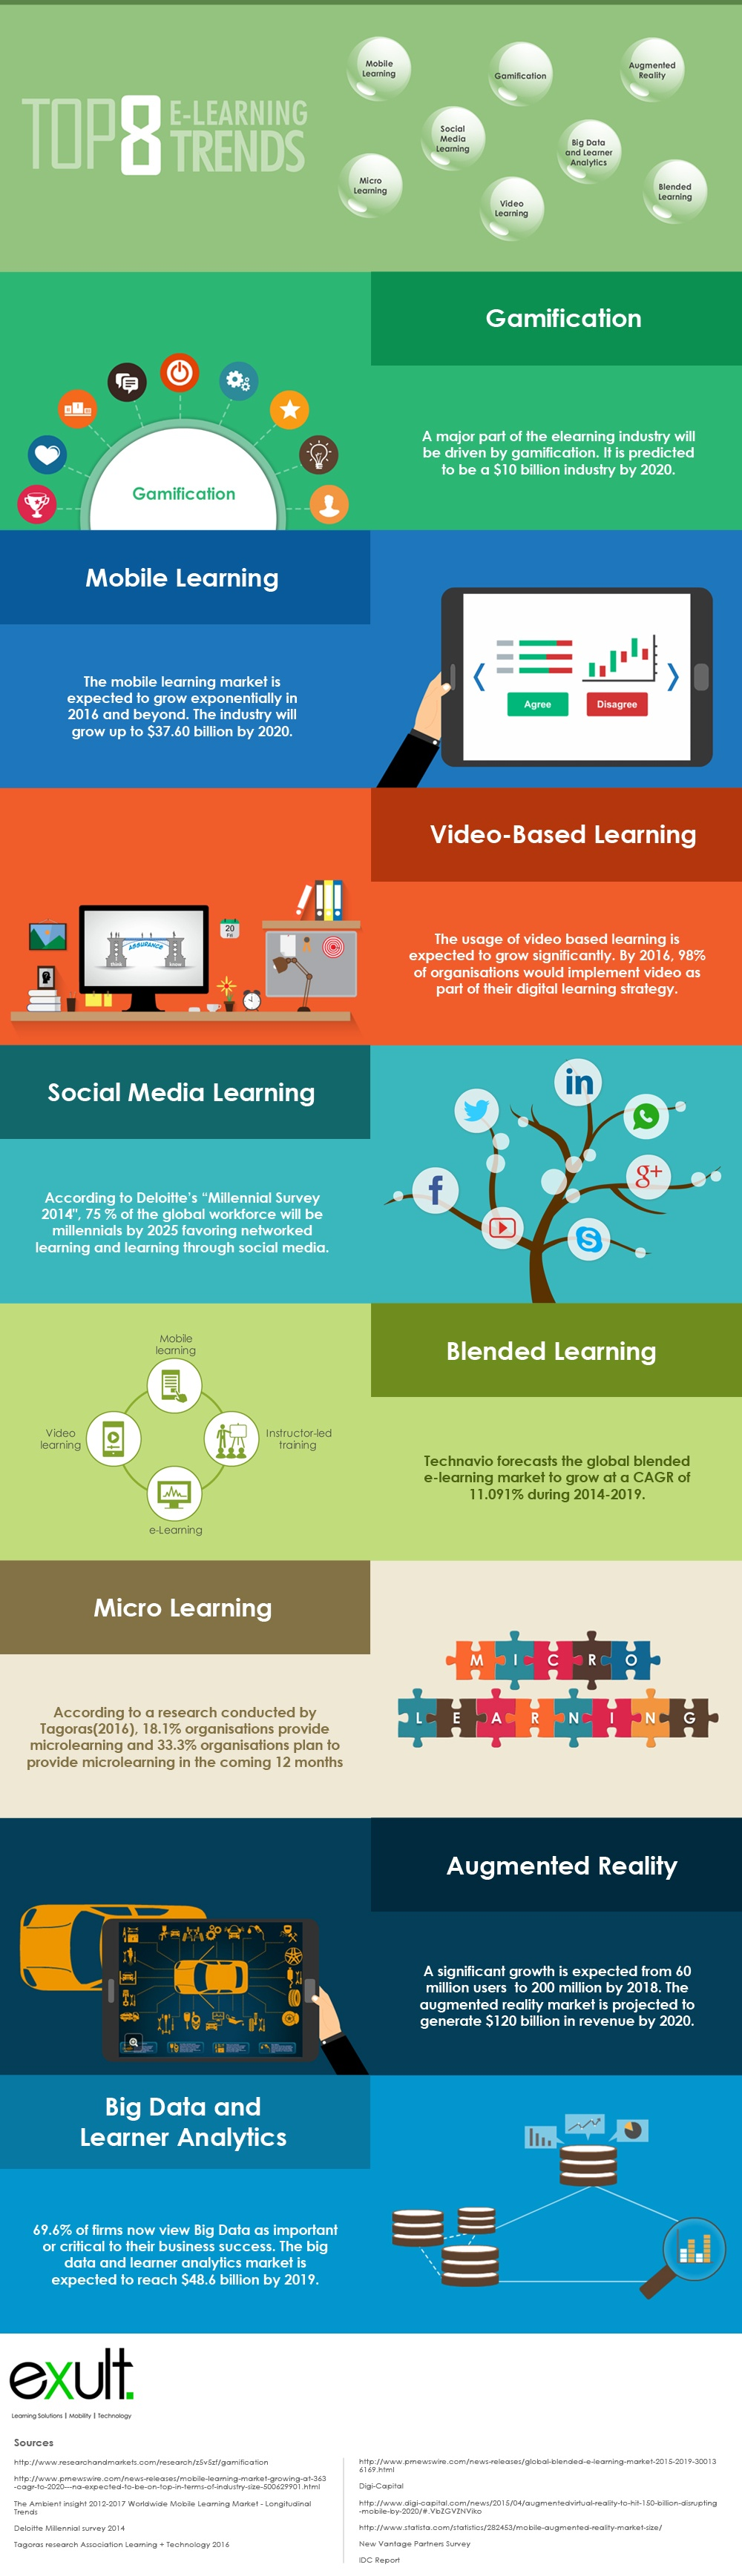 Top 8 eLearning Trends Infographic - e-Learning Infographics